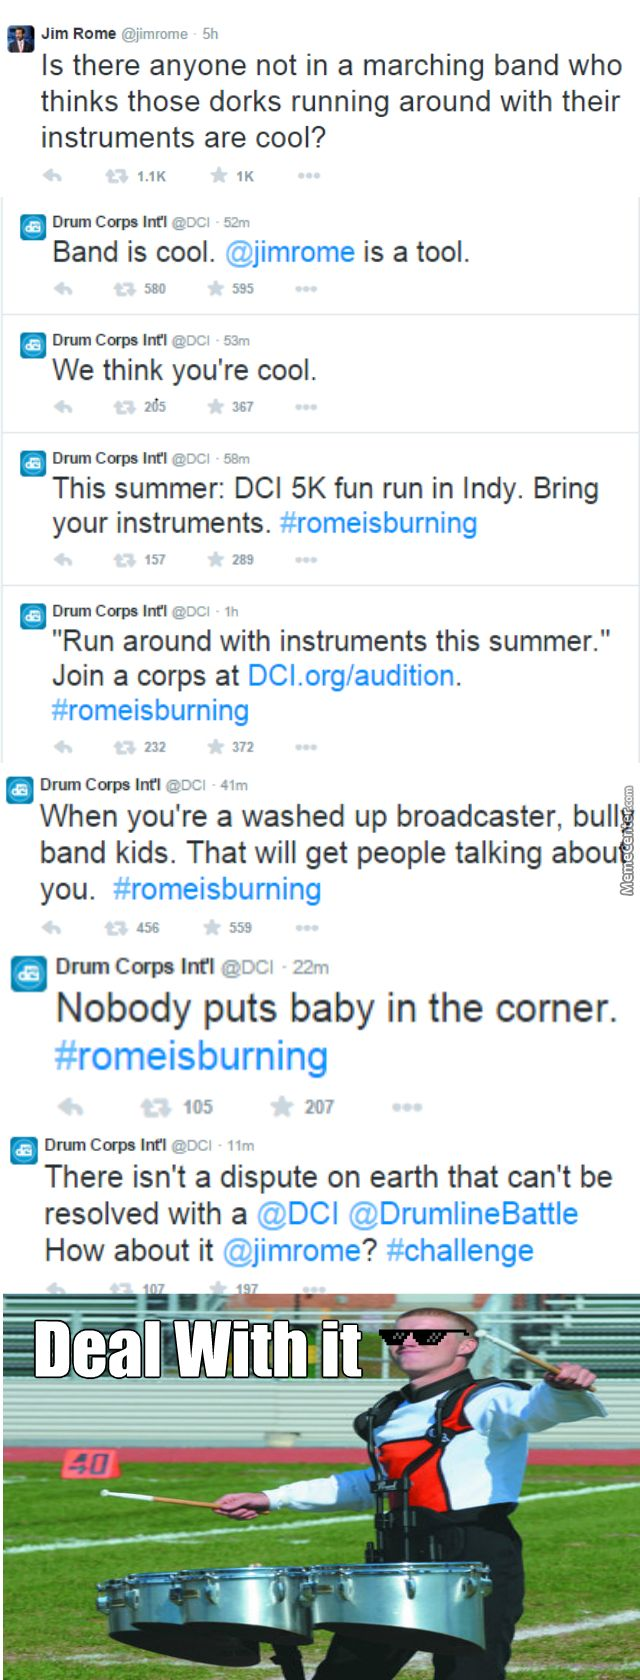 Drum Corp International Giving Jim Rome The Shade He Deserves by ...""